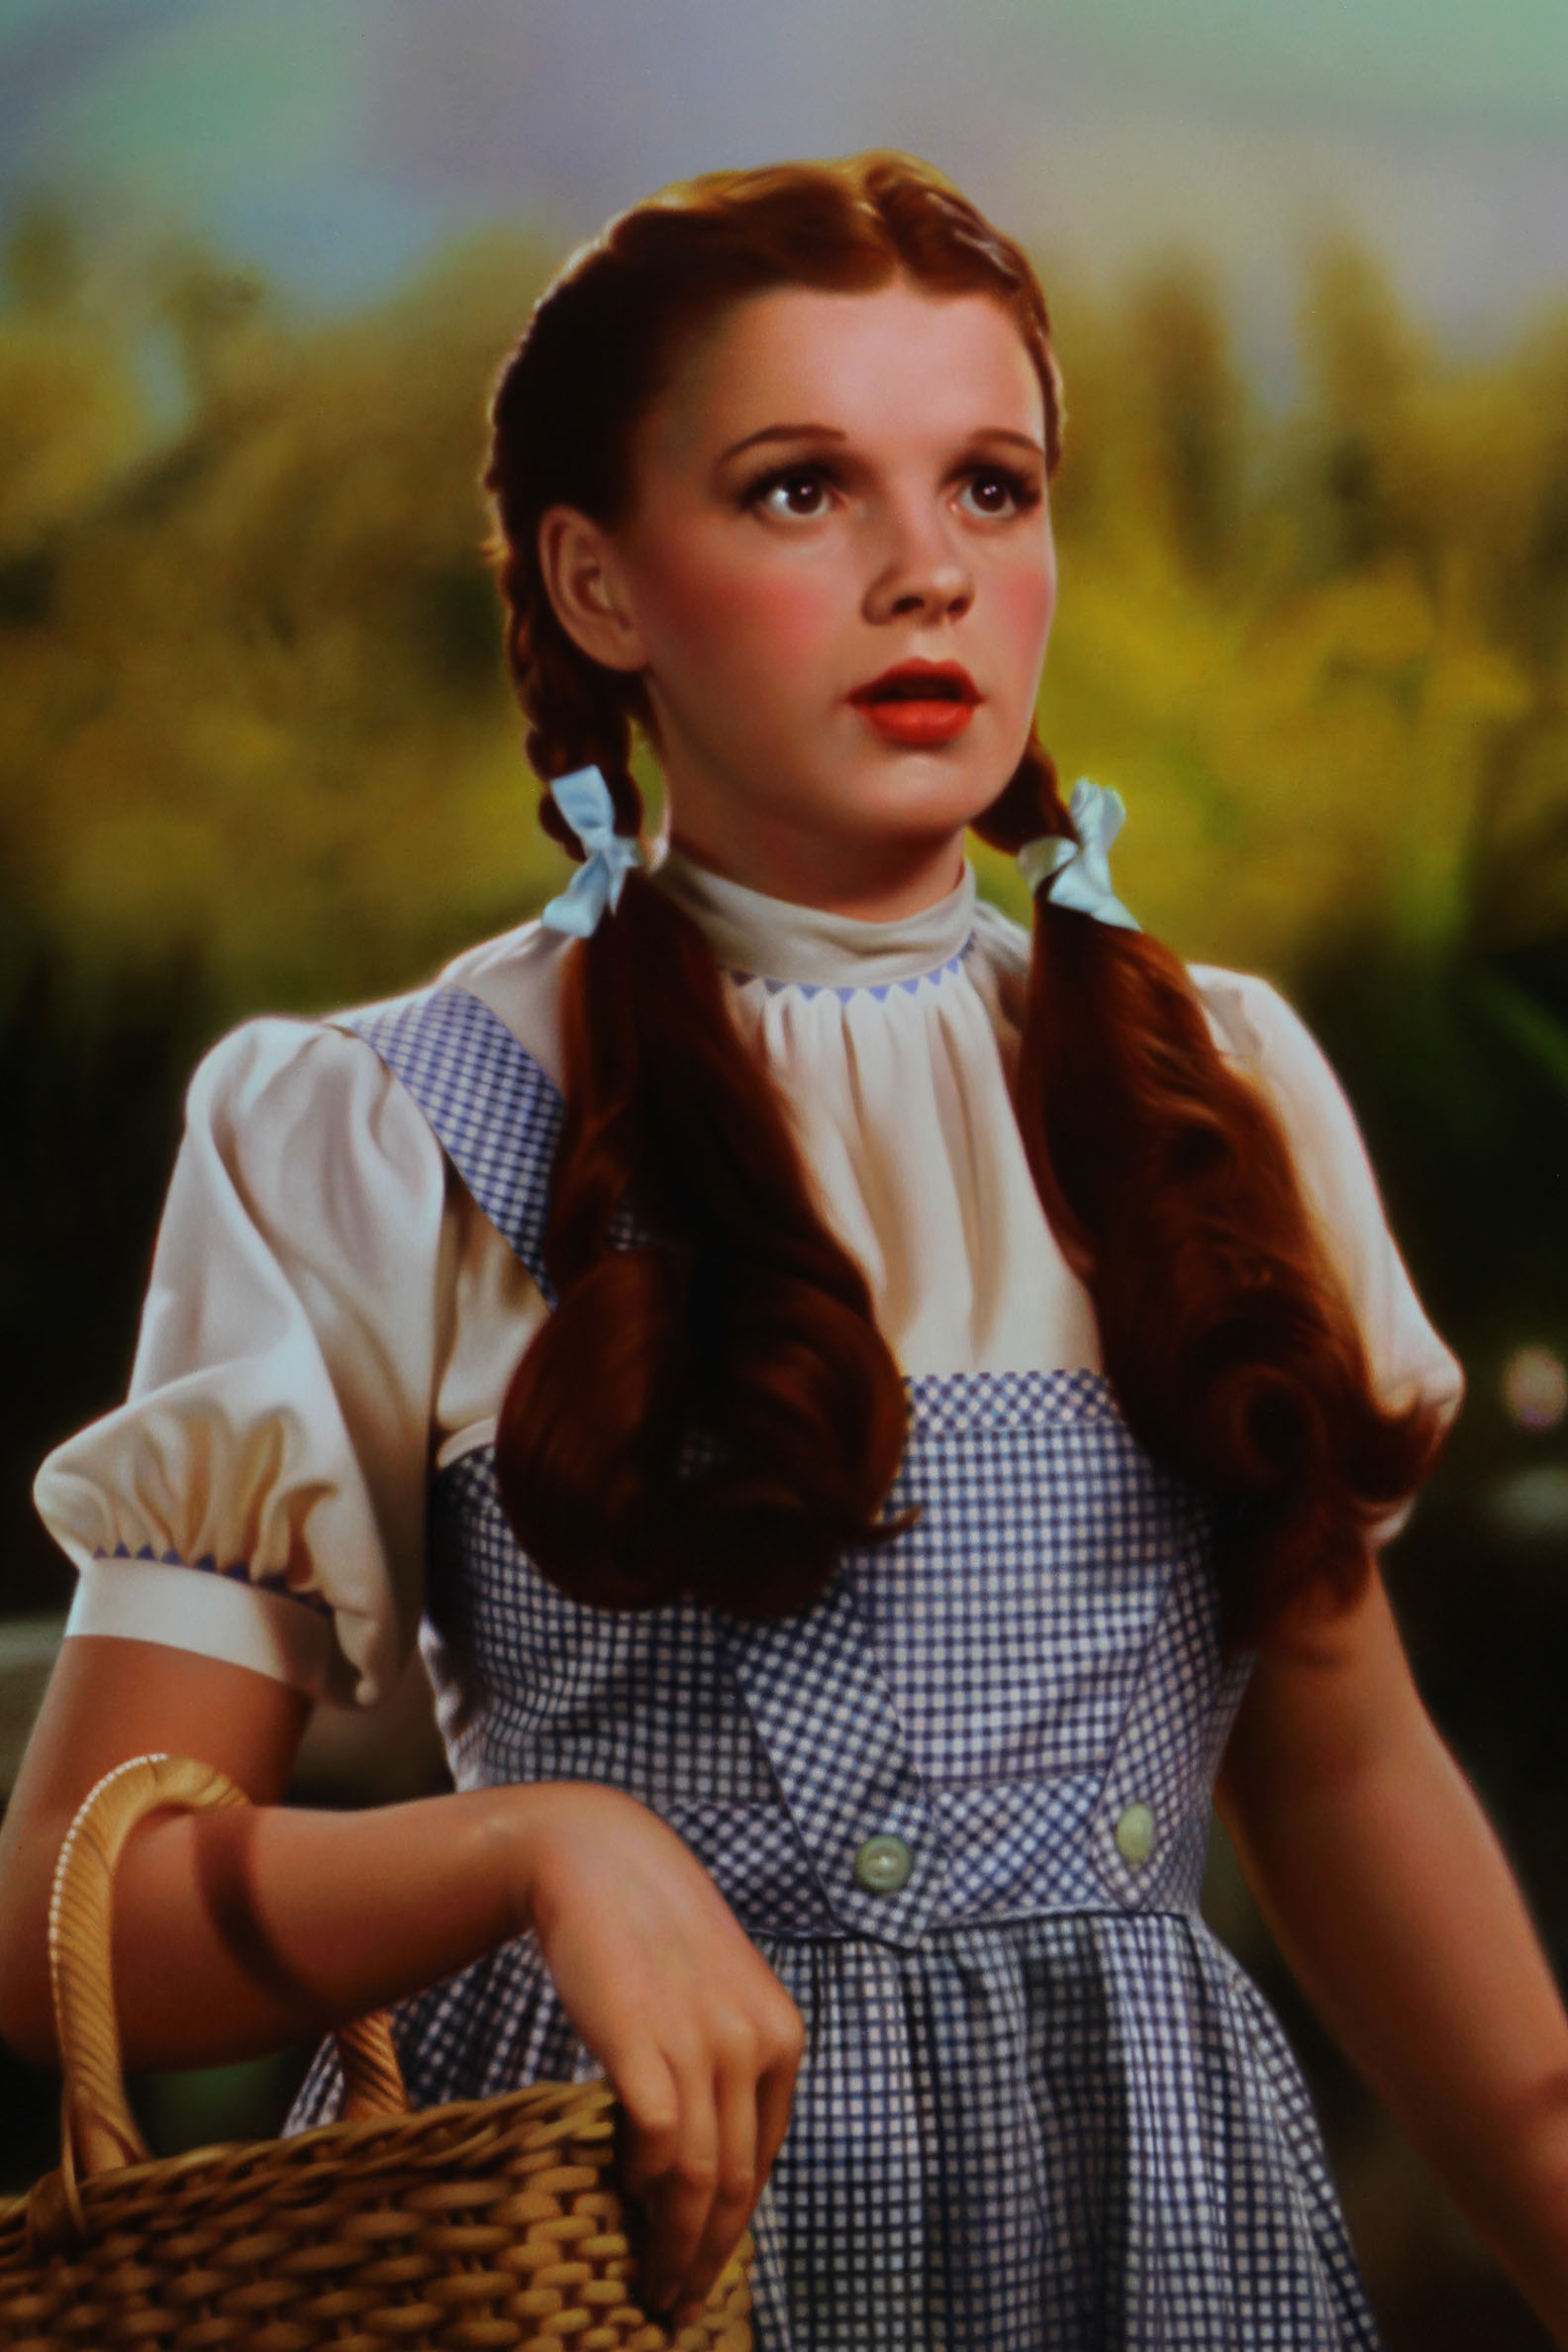 "Dorothy Gale (detail). Oil on panel. 30x50"" 2018."